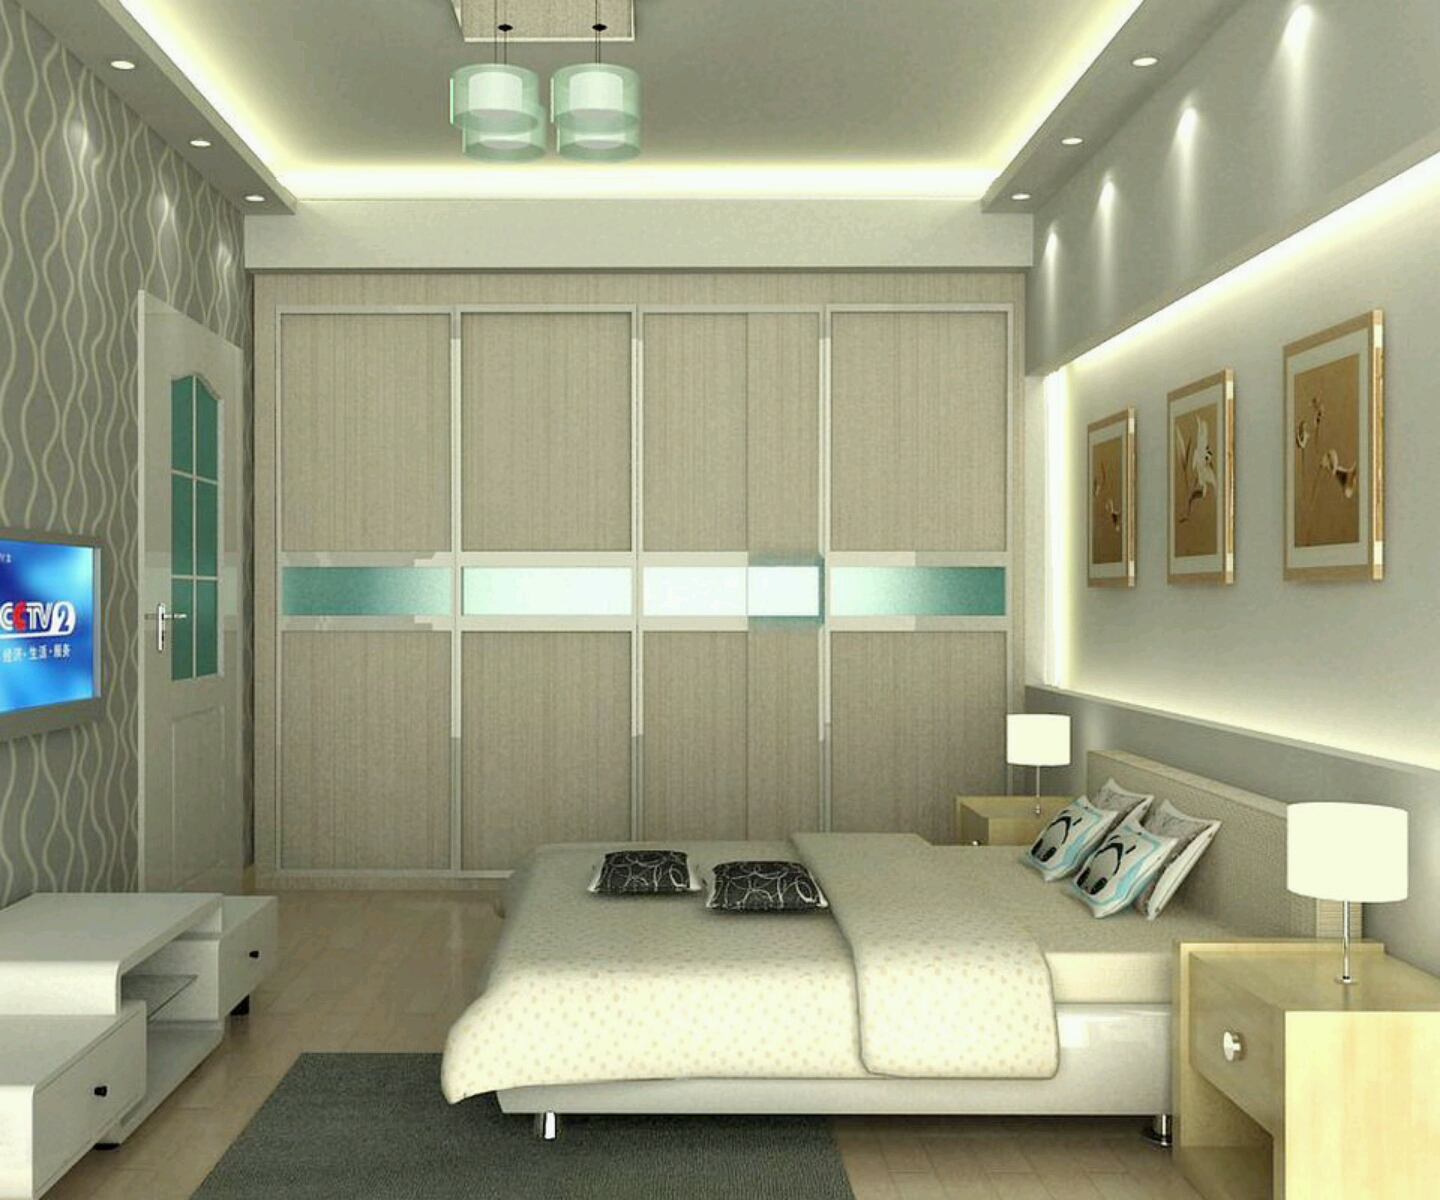 New home designs latest modern homes bedrooms designs best bedrooms designs ideas - Latest bedroom design ...